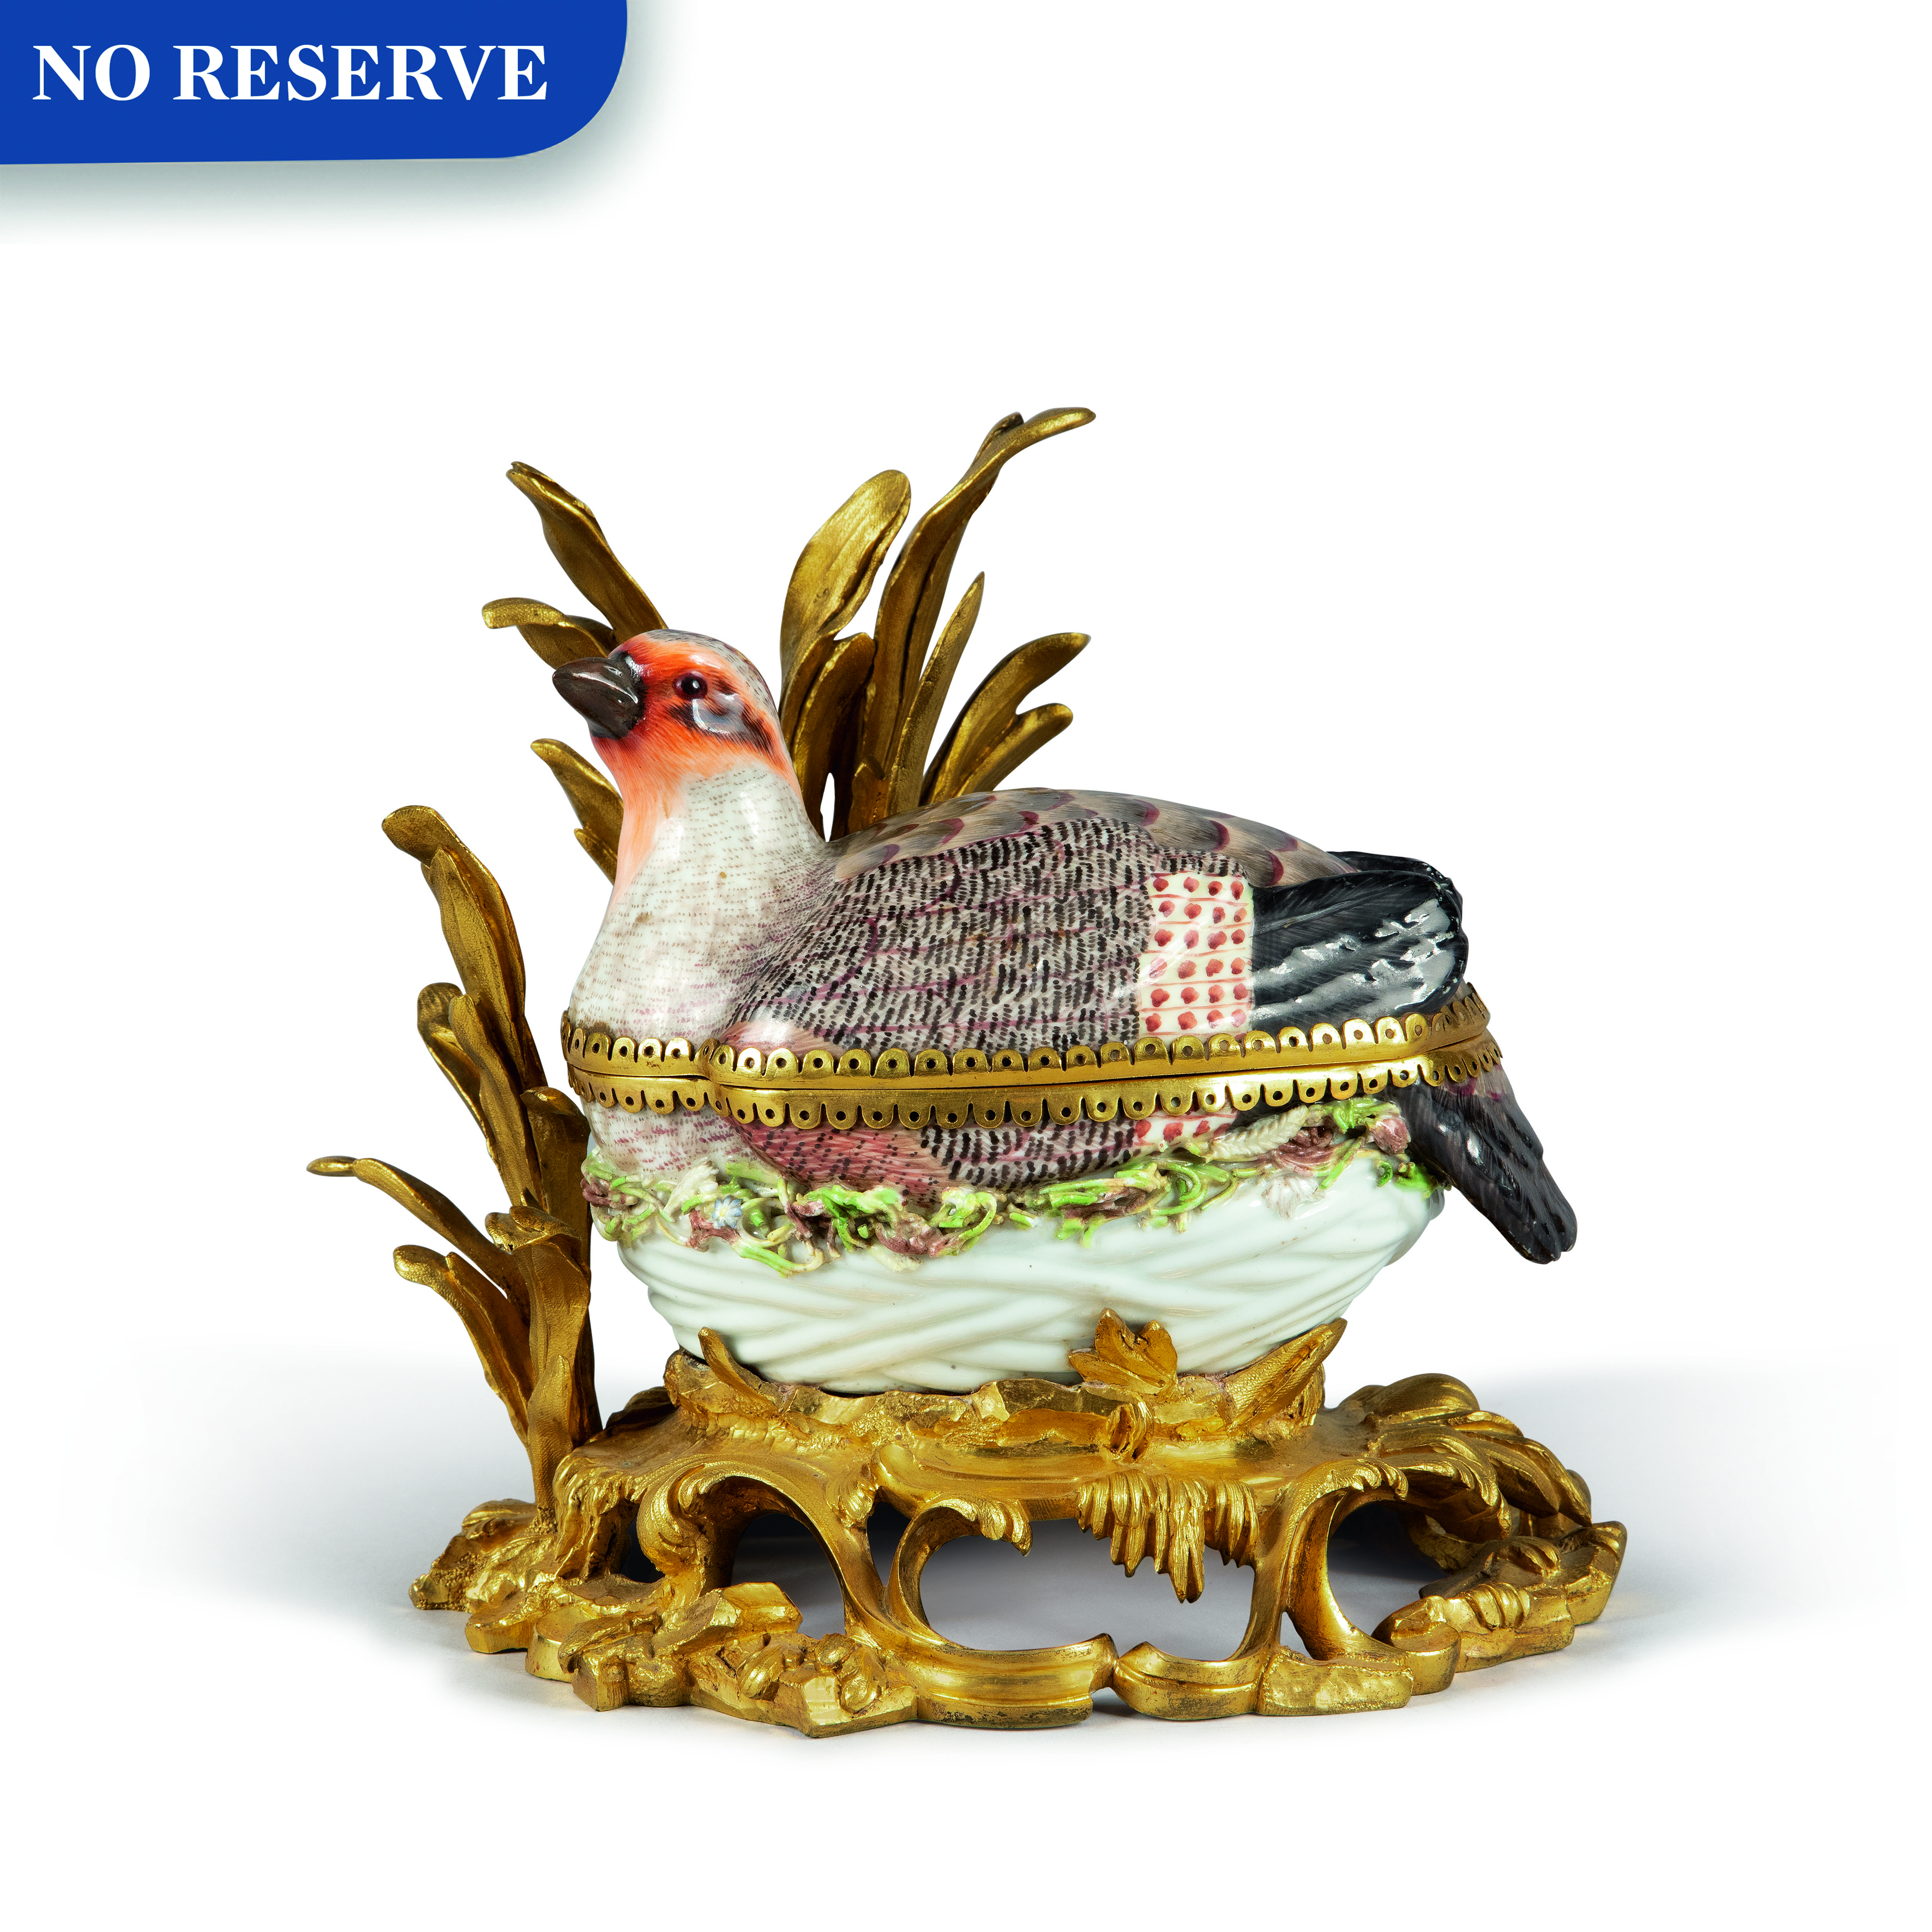 View full screen - View 1 of Lot 91. A MEISSEN PORCELAIN PARTRIDGE-FORM TUREEN AND COVER, MOUNTED ON A ROCOCO GILT BRONZE BASE, EARLY 19TH CENTURY.